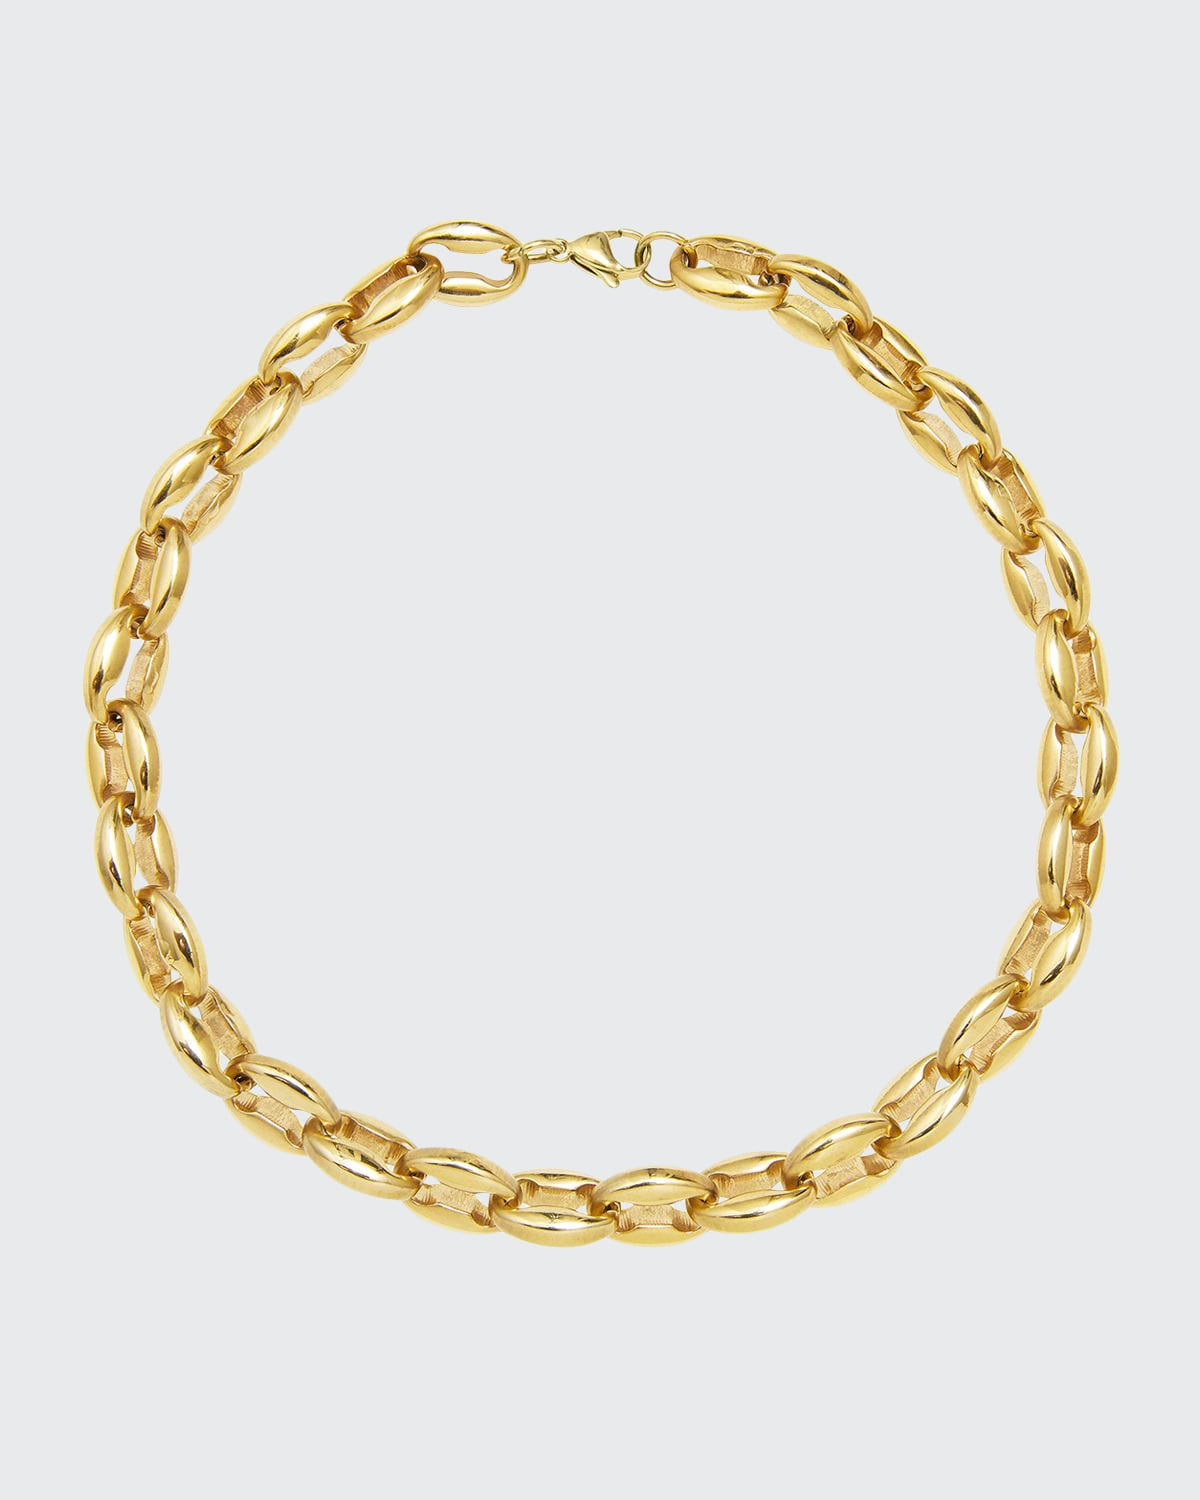 Toscano Chain Choker Necklace